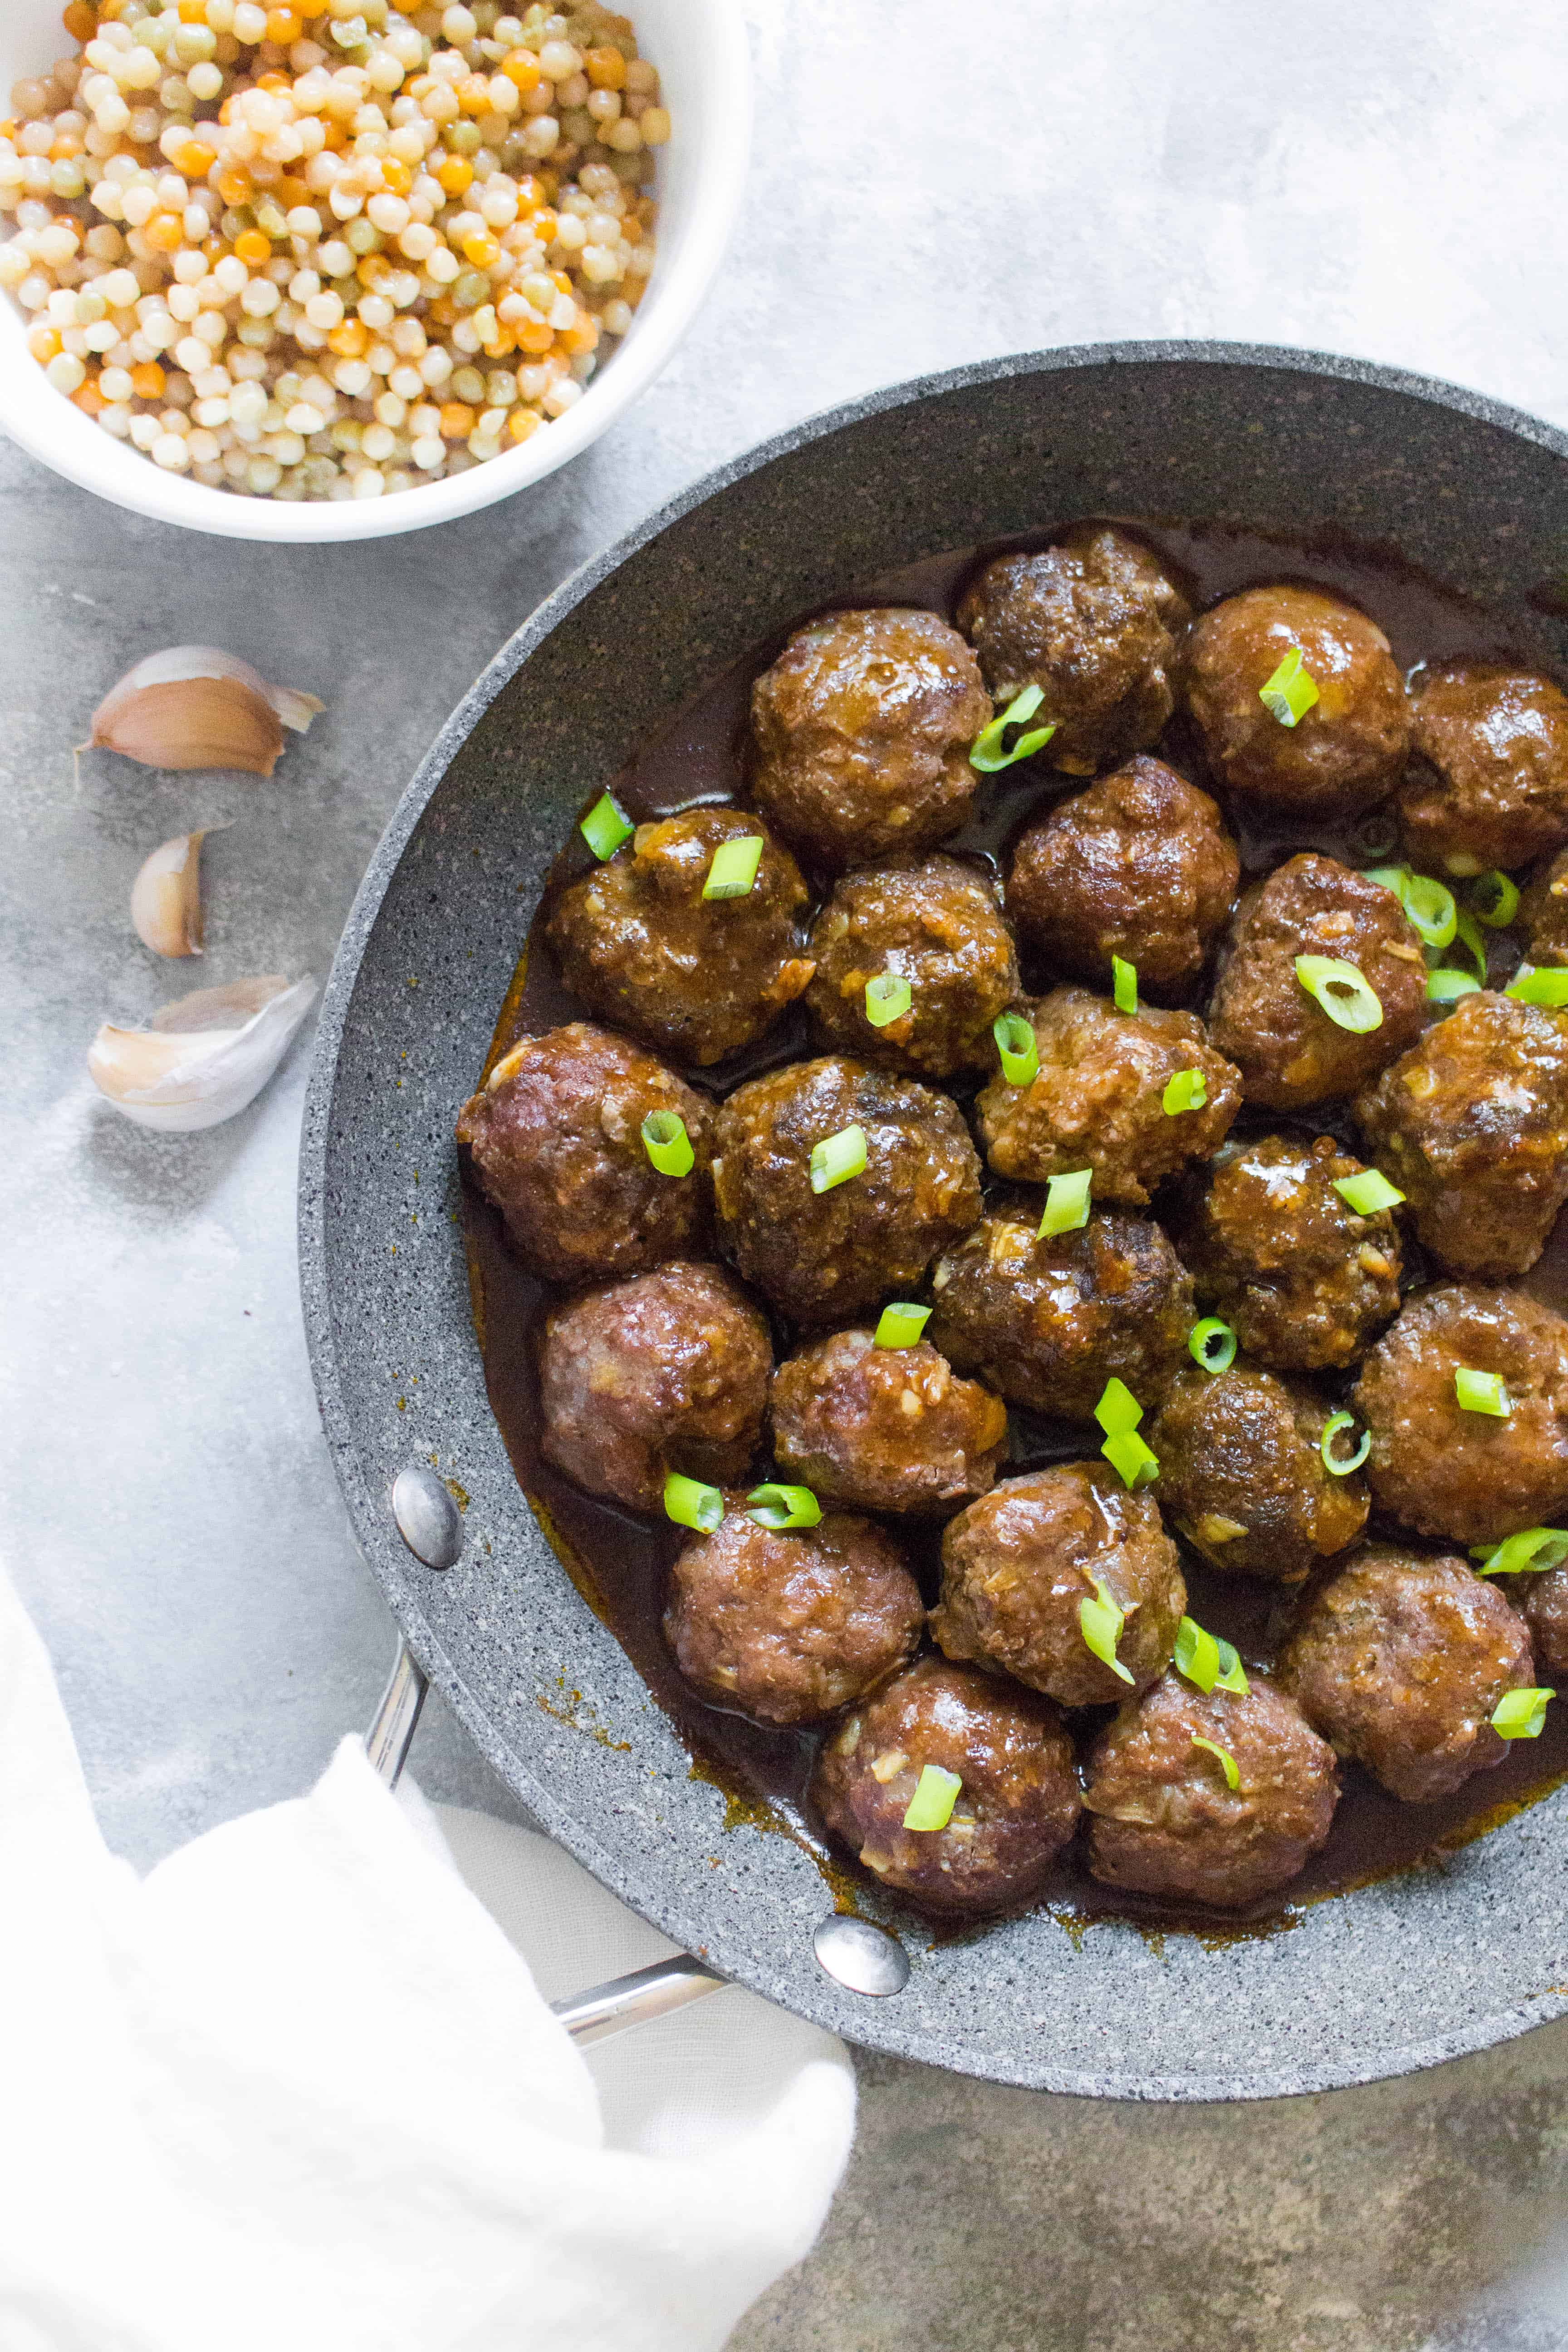 This asian inspired meatball recipe, Hoisin Sriracha Glazed Meatballs, will quickly become a meal prep favourite! Coated with a delicious sauce with a hint of spice, you're going to want to eat it all week! #meatballs #mealprep